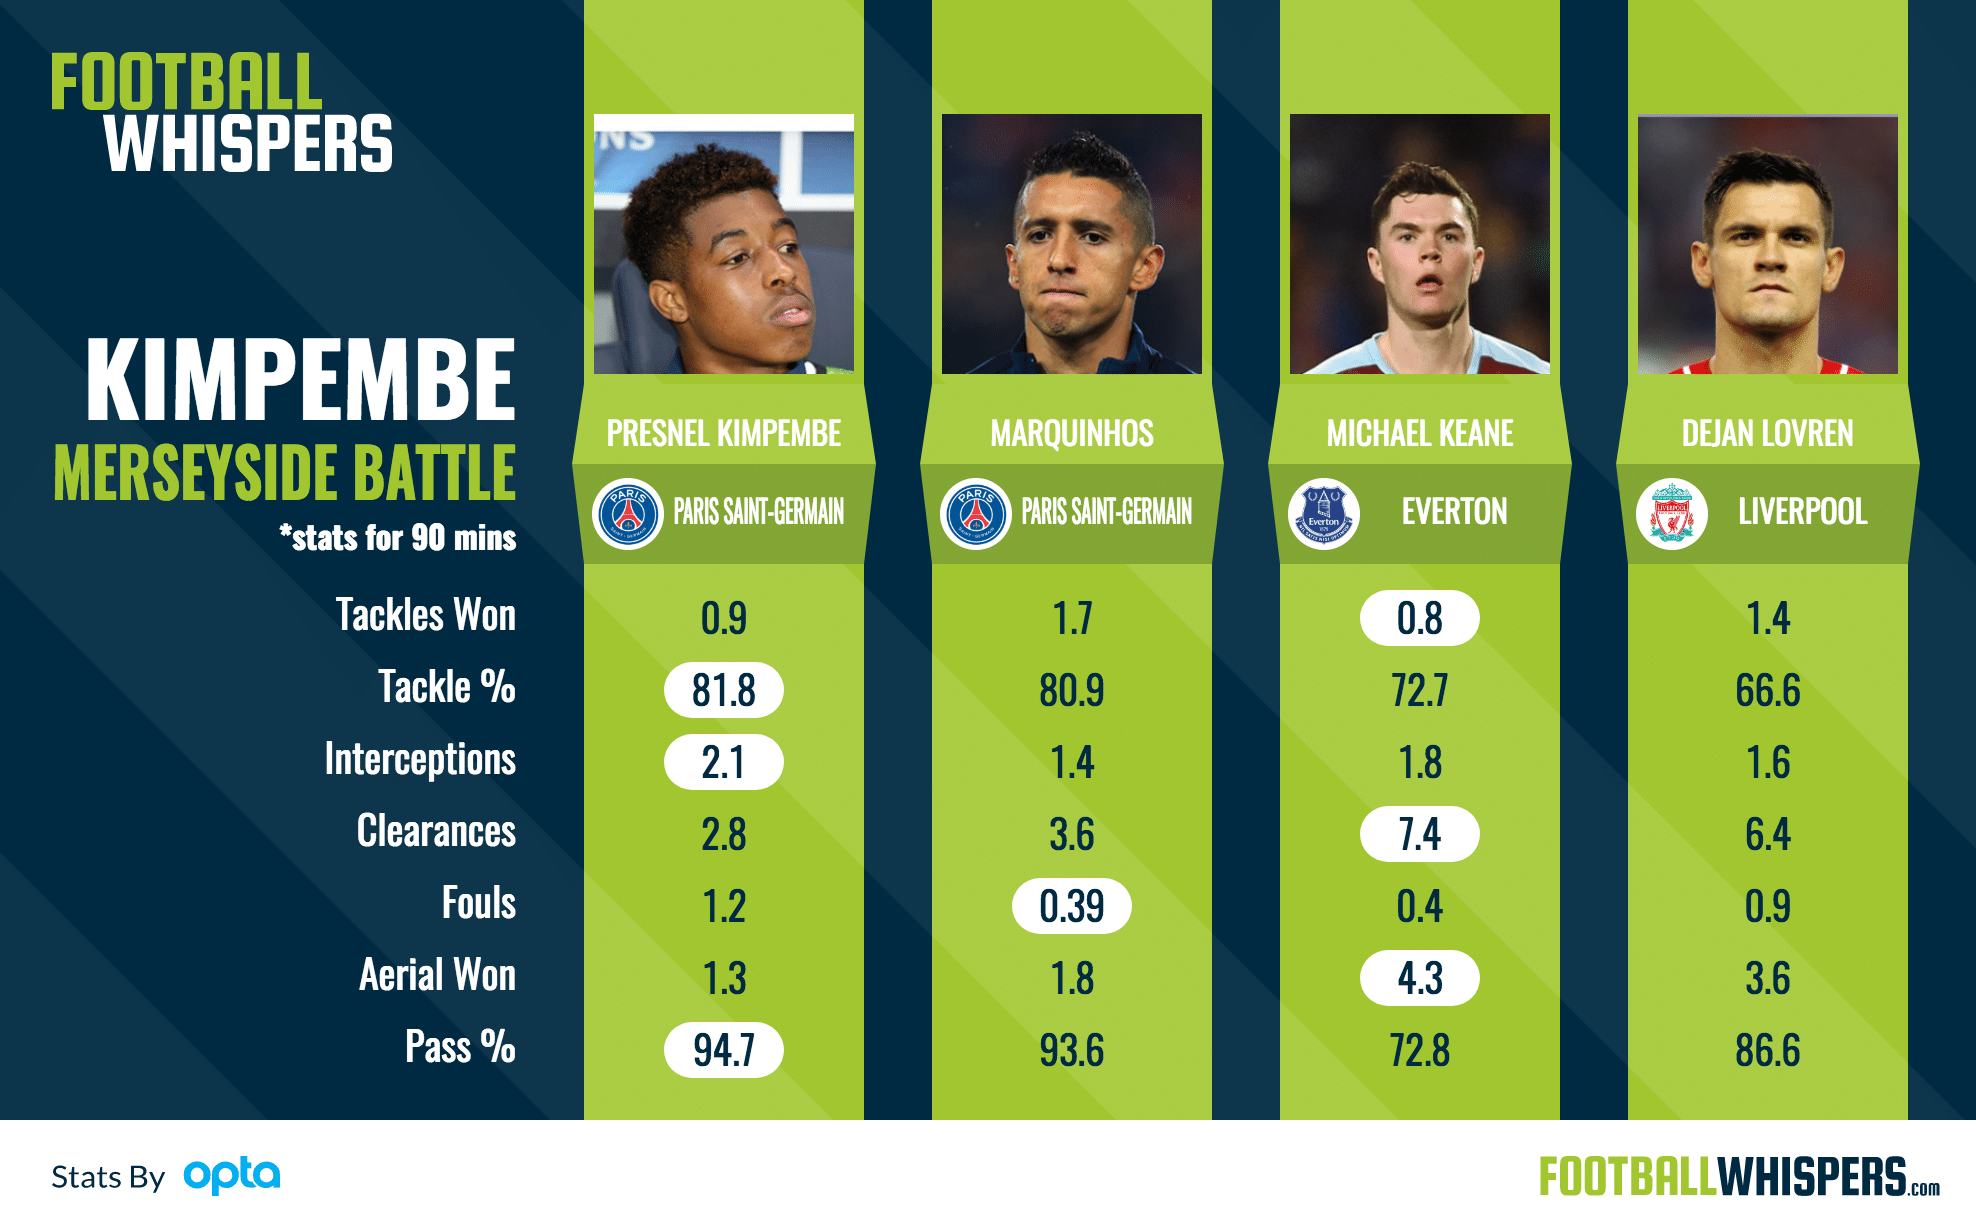 Presnel Kimpembe's stats compared to Liverpool and Everton defenders.